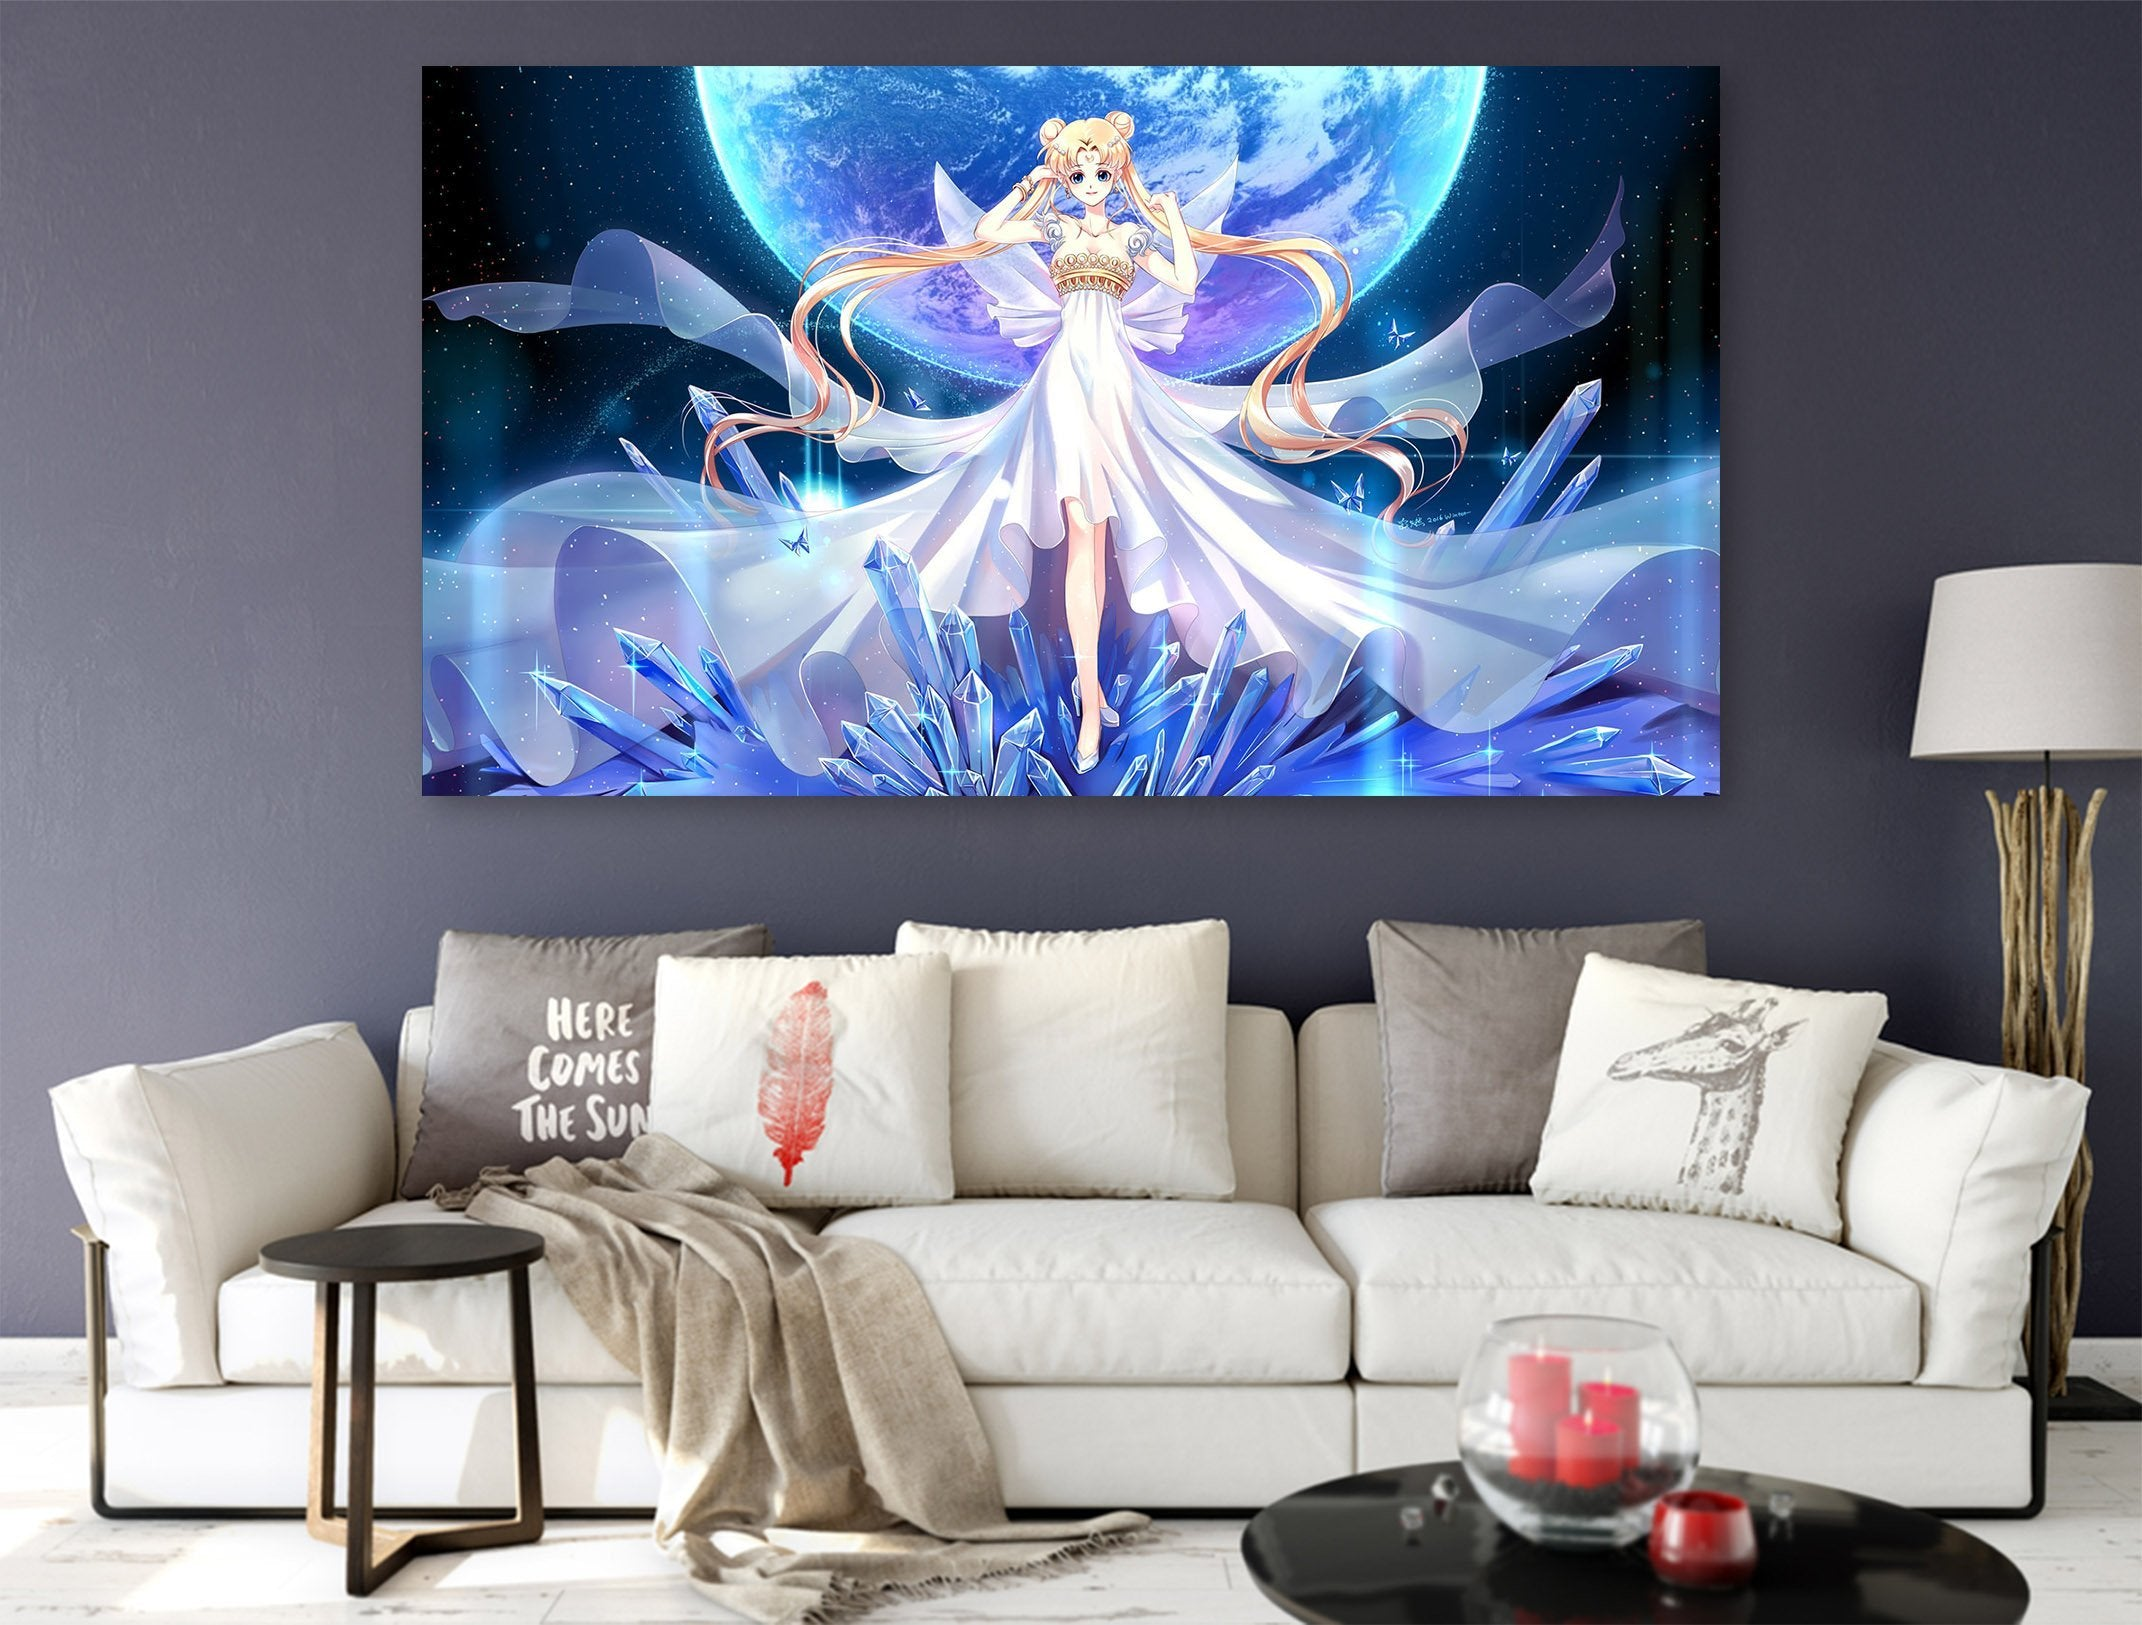 3D Sailor Moon 333 Anime Wall Stickers Wallpaper AJ Wallpaper 2